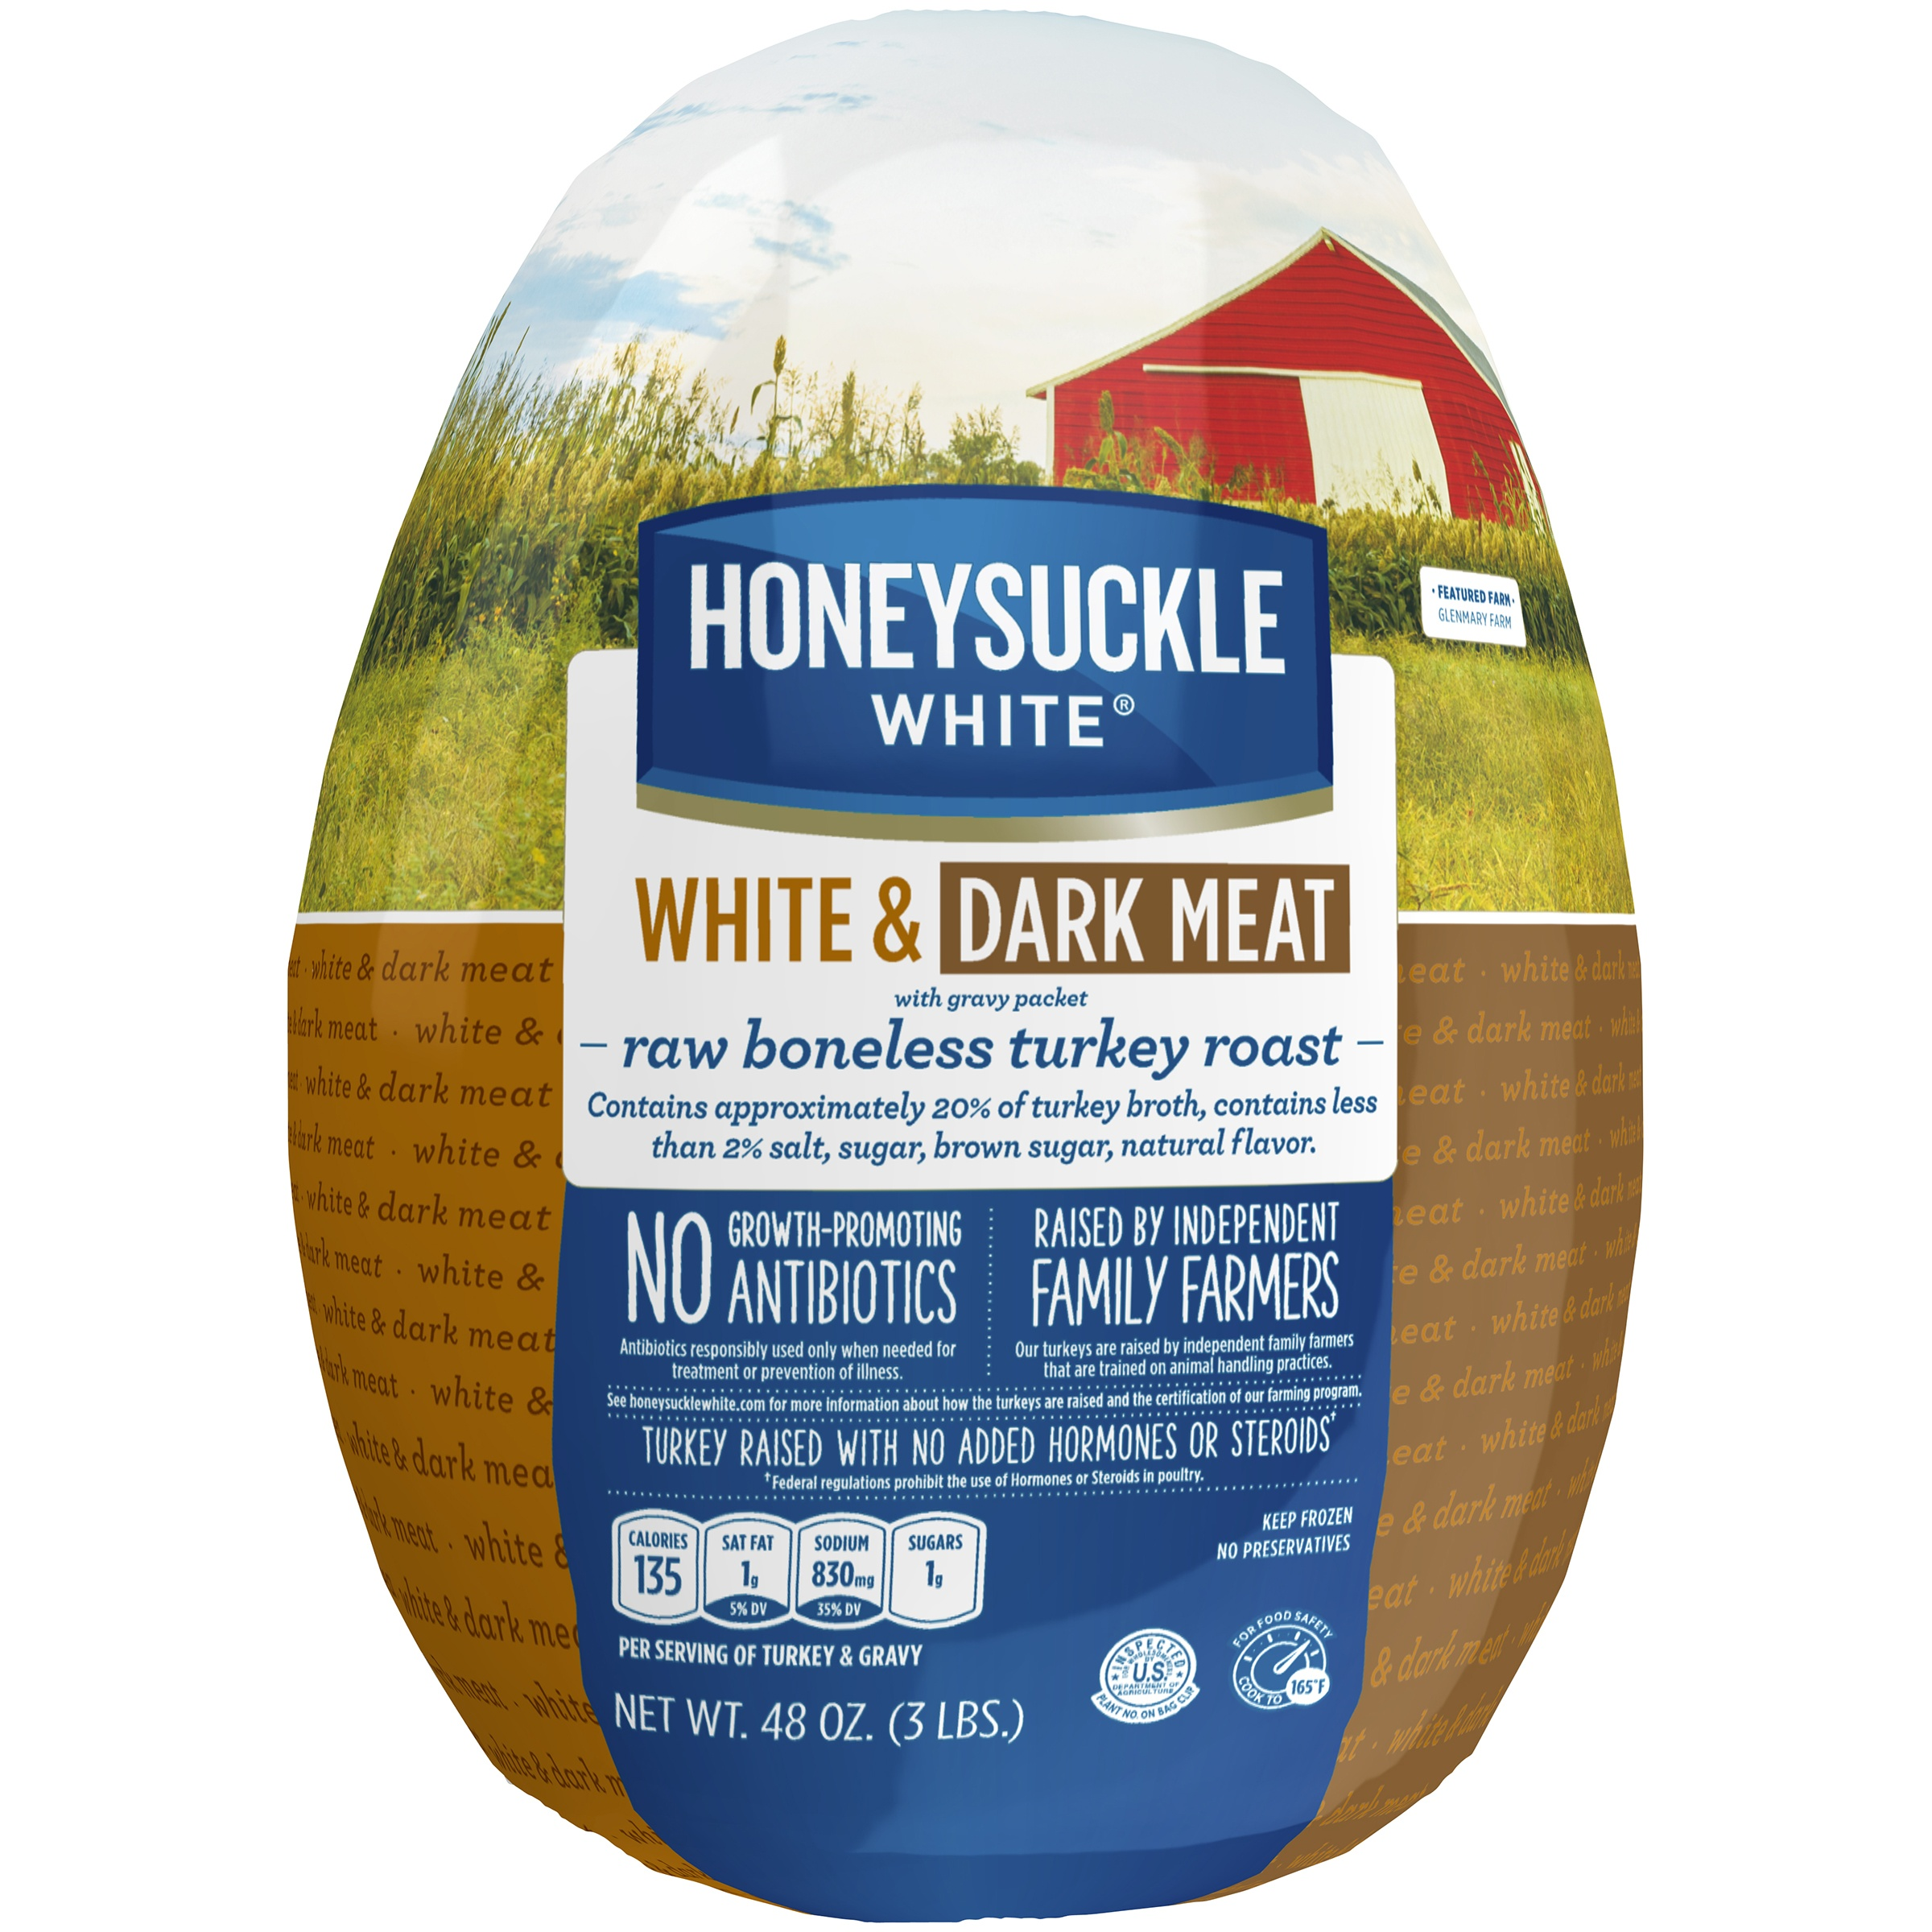 Honeysuckle White Frozen White and Dark Meat Boneless Turkey Roast with Gravy (3 lbs) by Cargill Meat Solutions